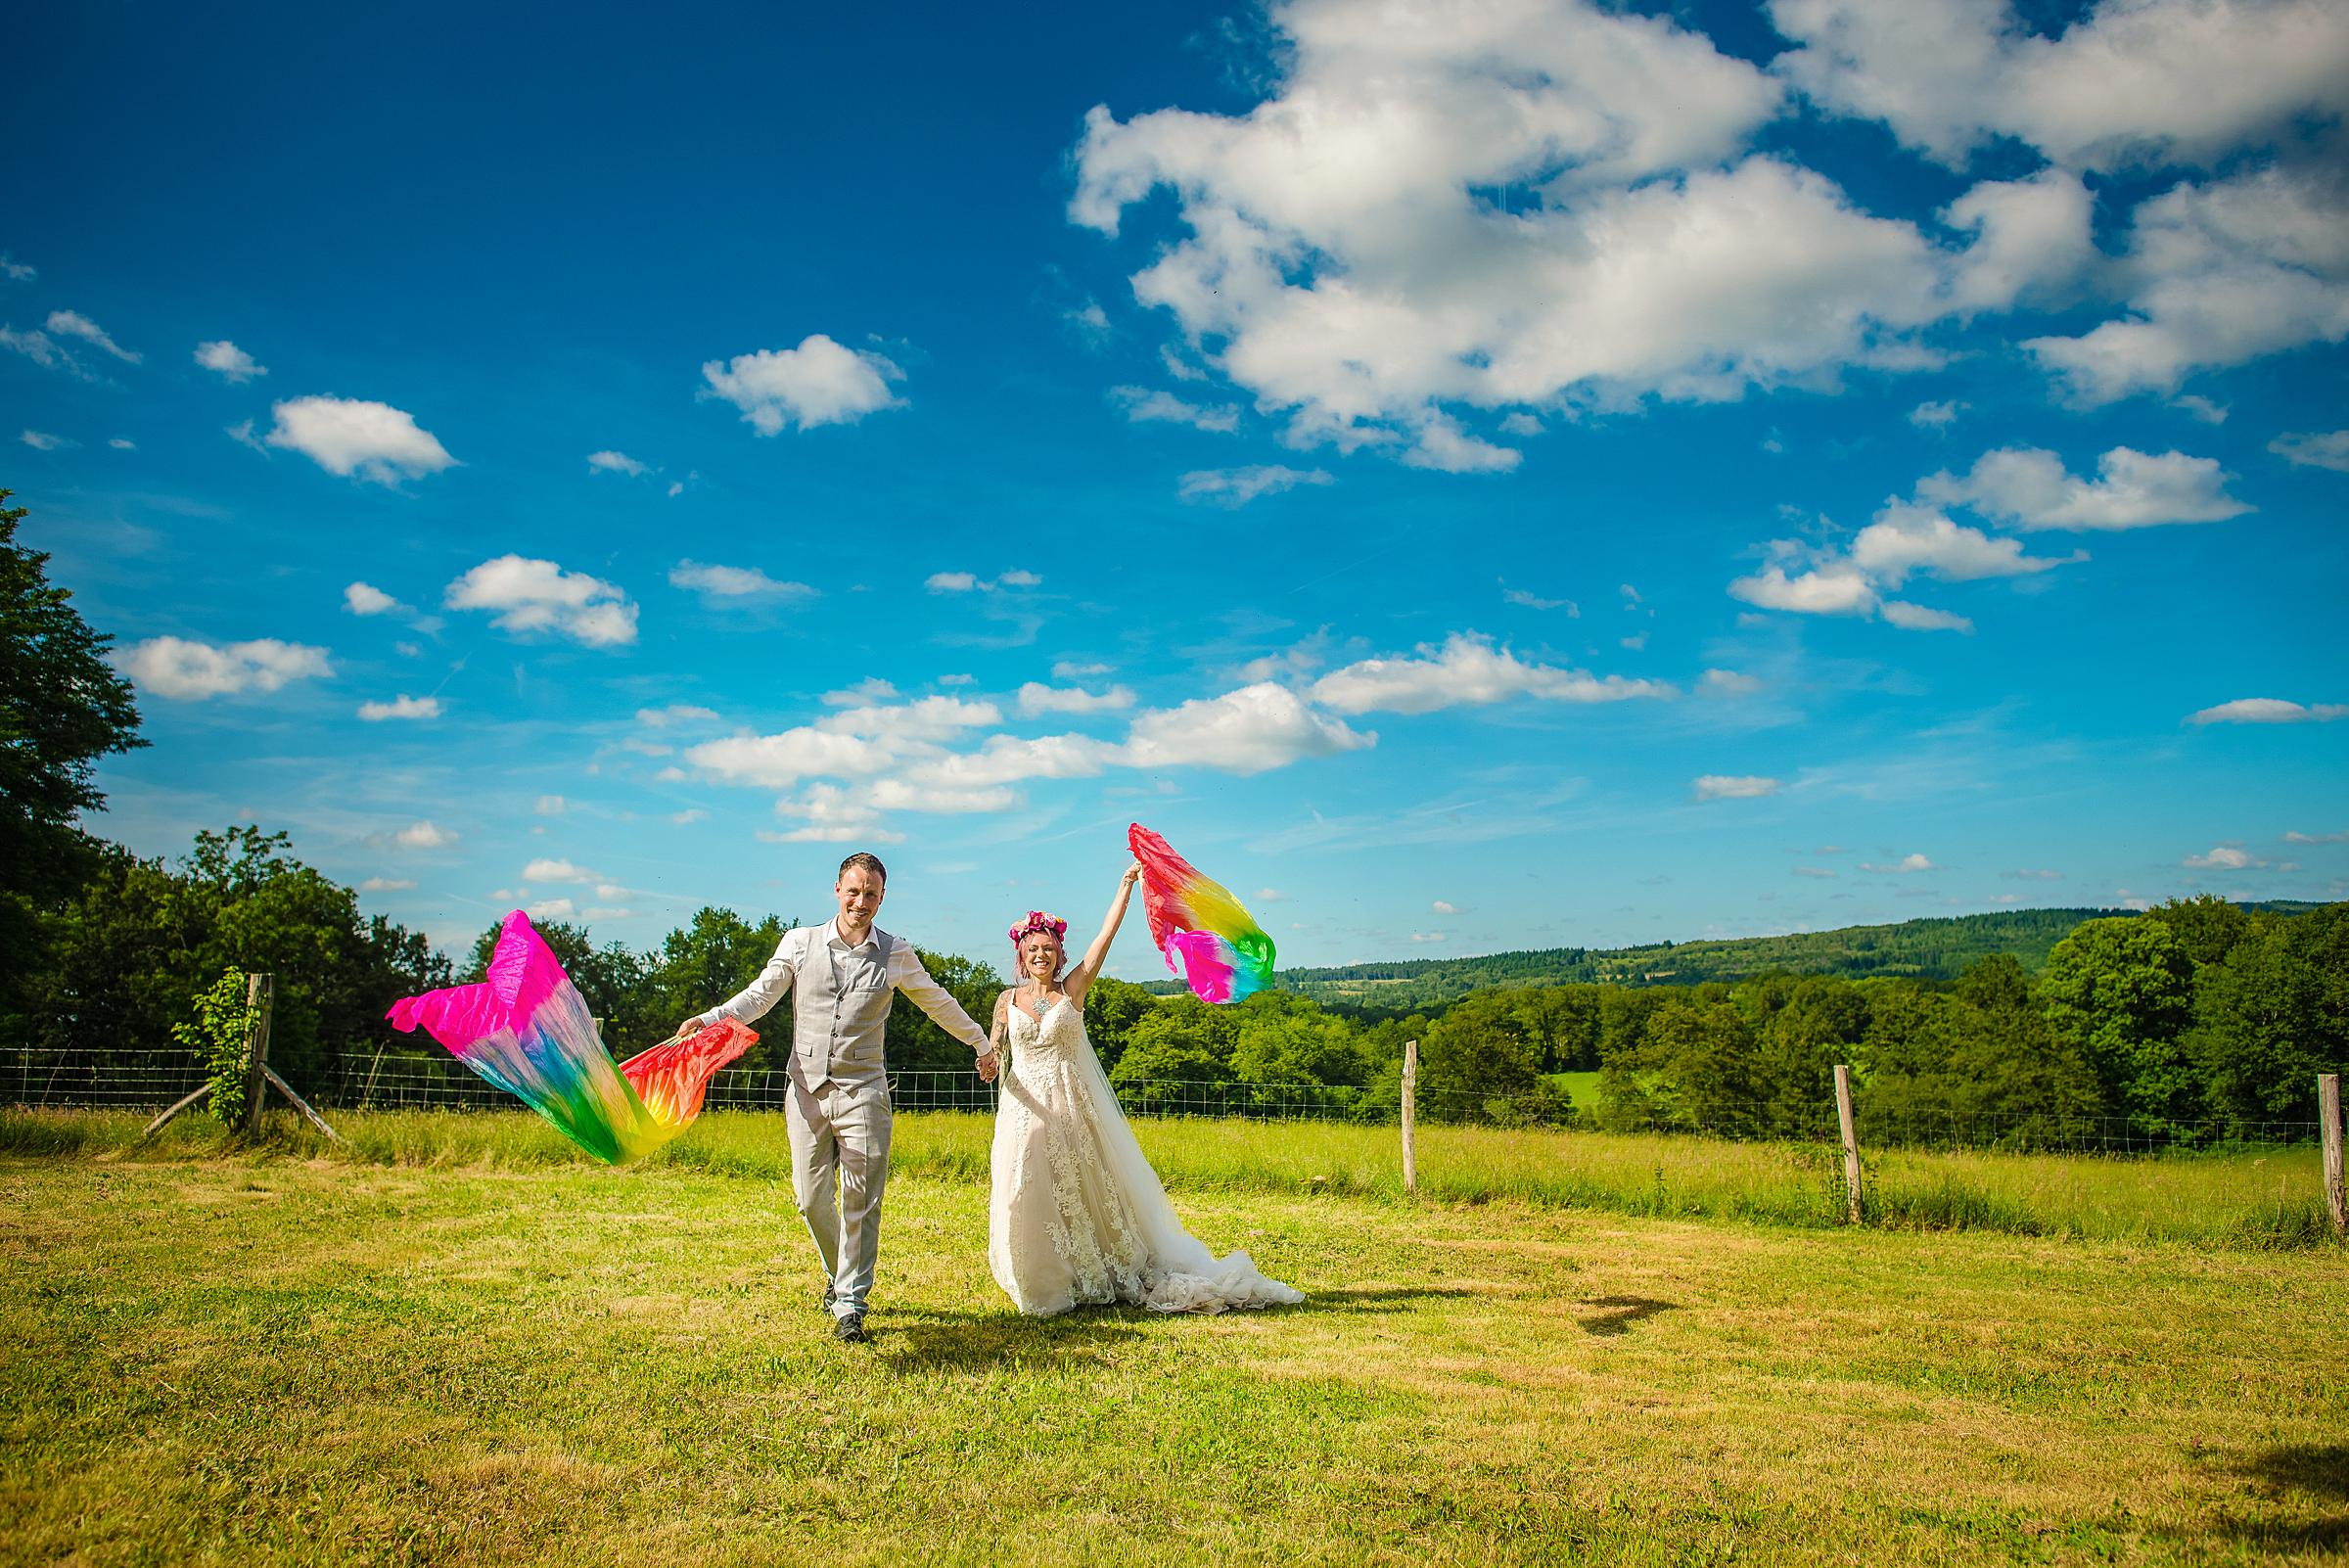 Back Garden Festival Wedding in France - Rainbow Pride